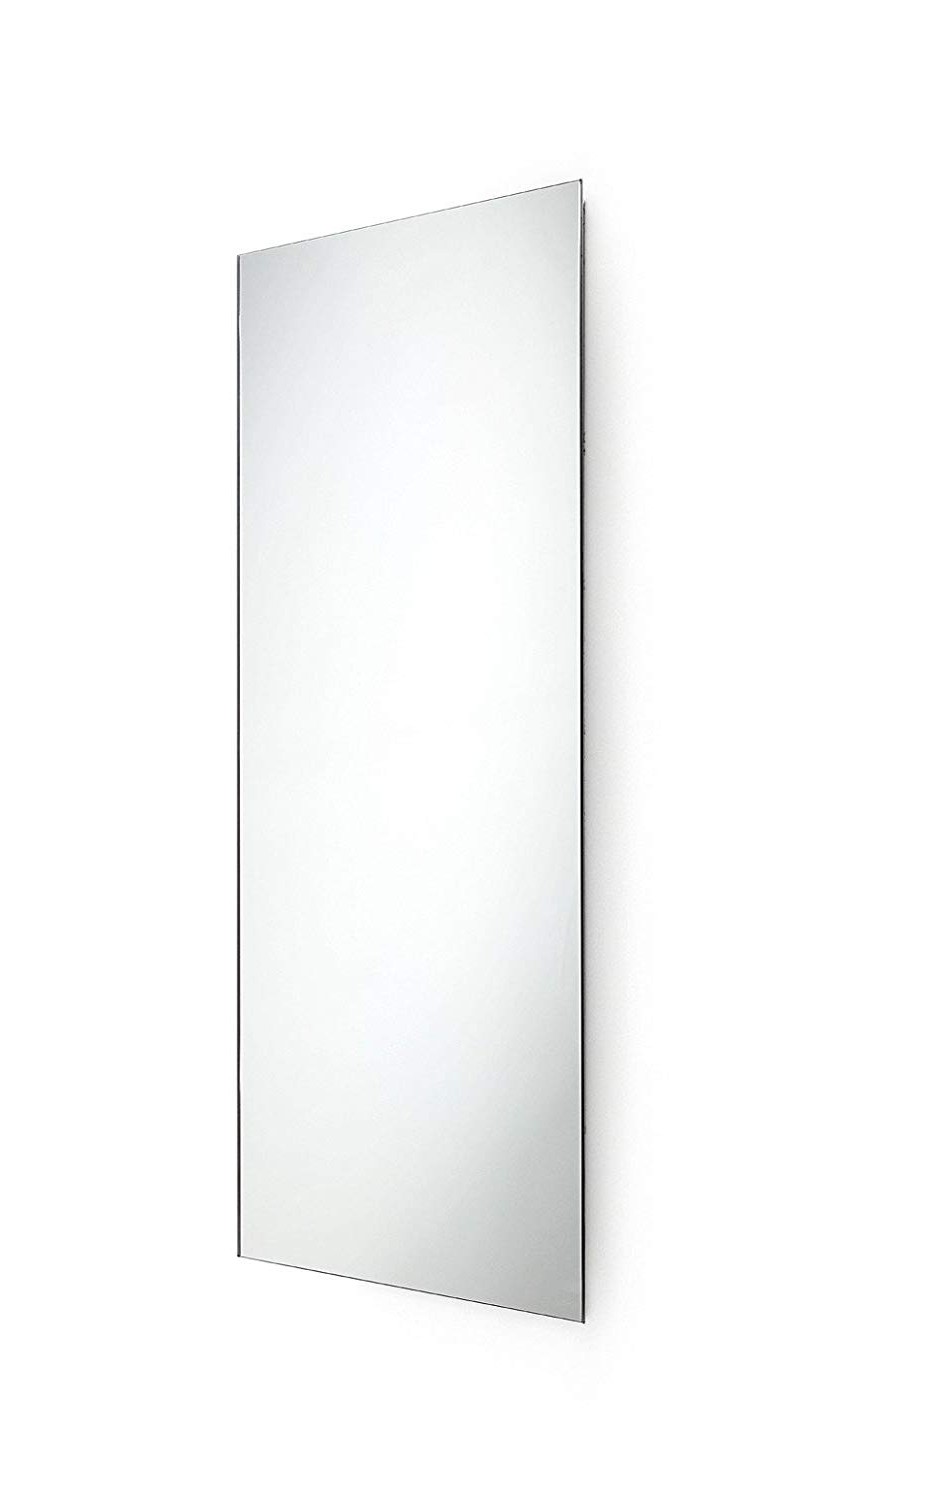 Cheap Frameless Full Length Wall Mirror, Find Frameless Full In Recent Frameless Full Length Wall Mirrors (View 3 of 20)